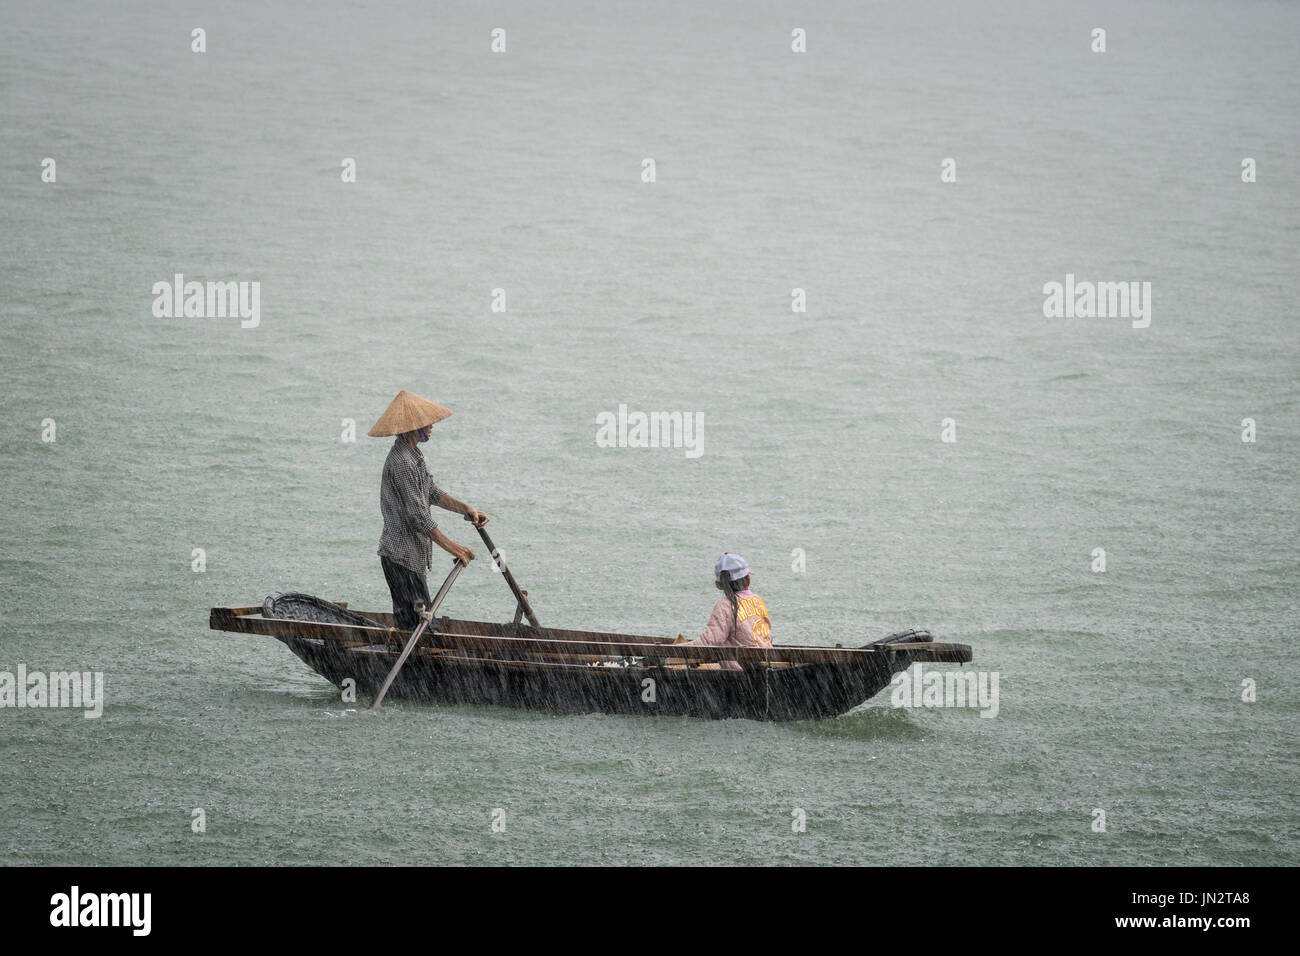 Vietnamese father and daughter in a row boat caught in the pouring rain during a storm at sea - Stock Image